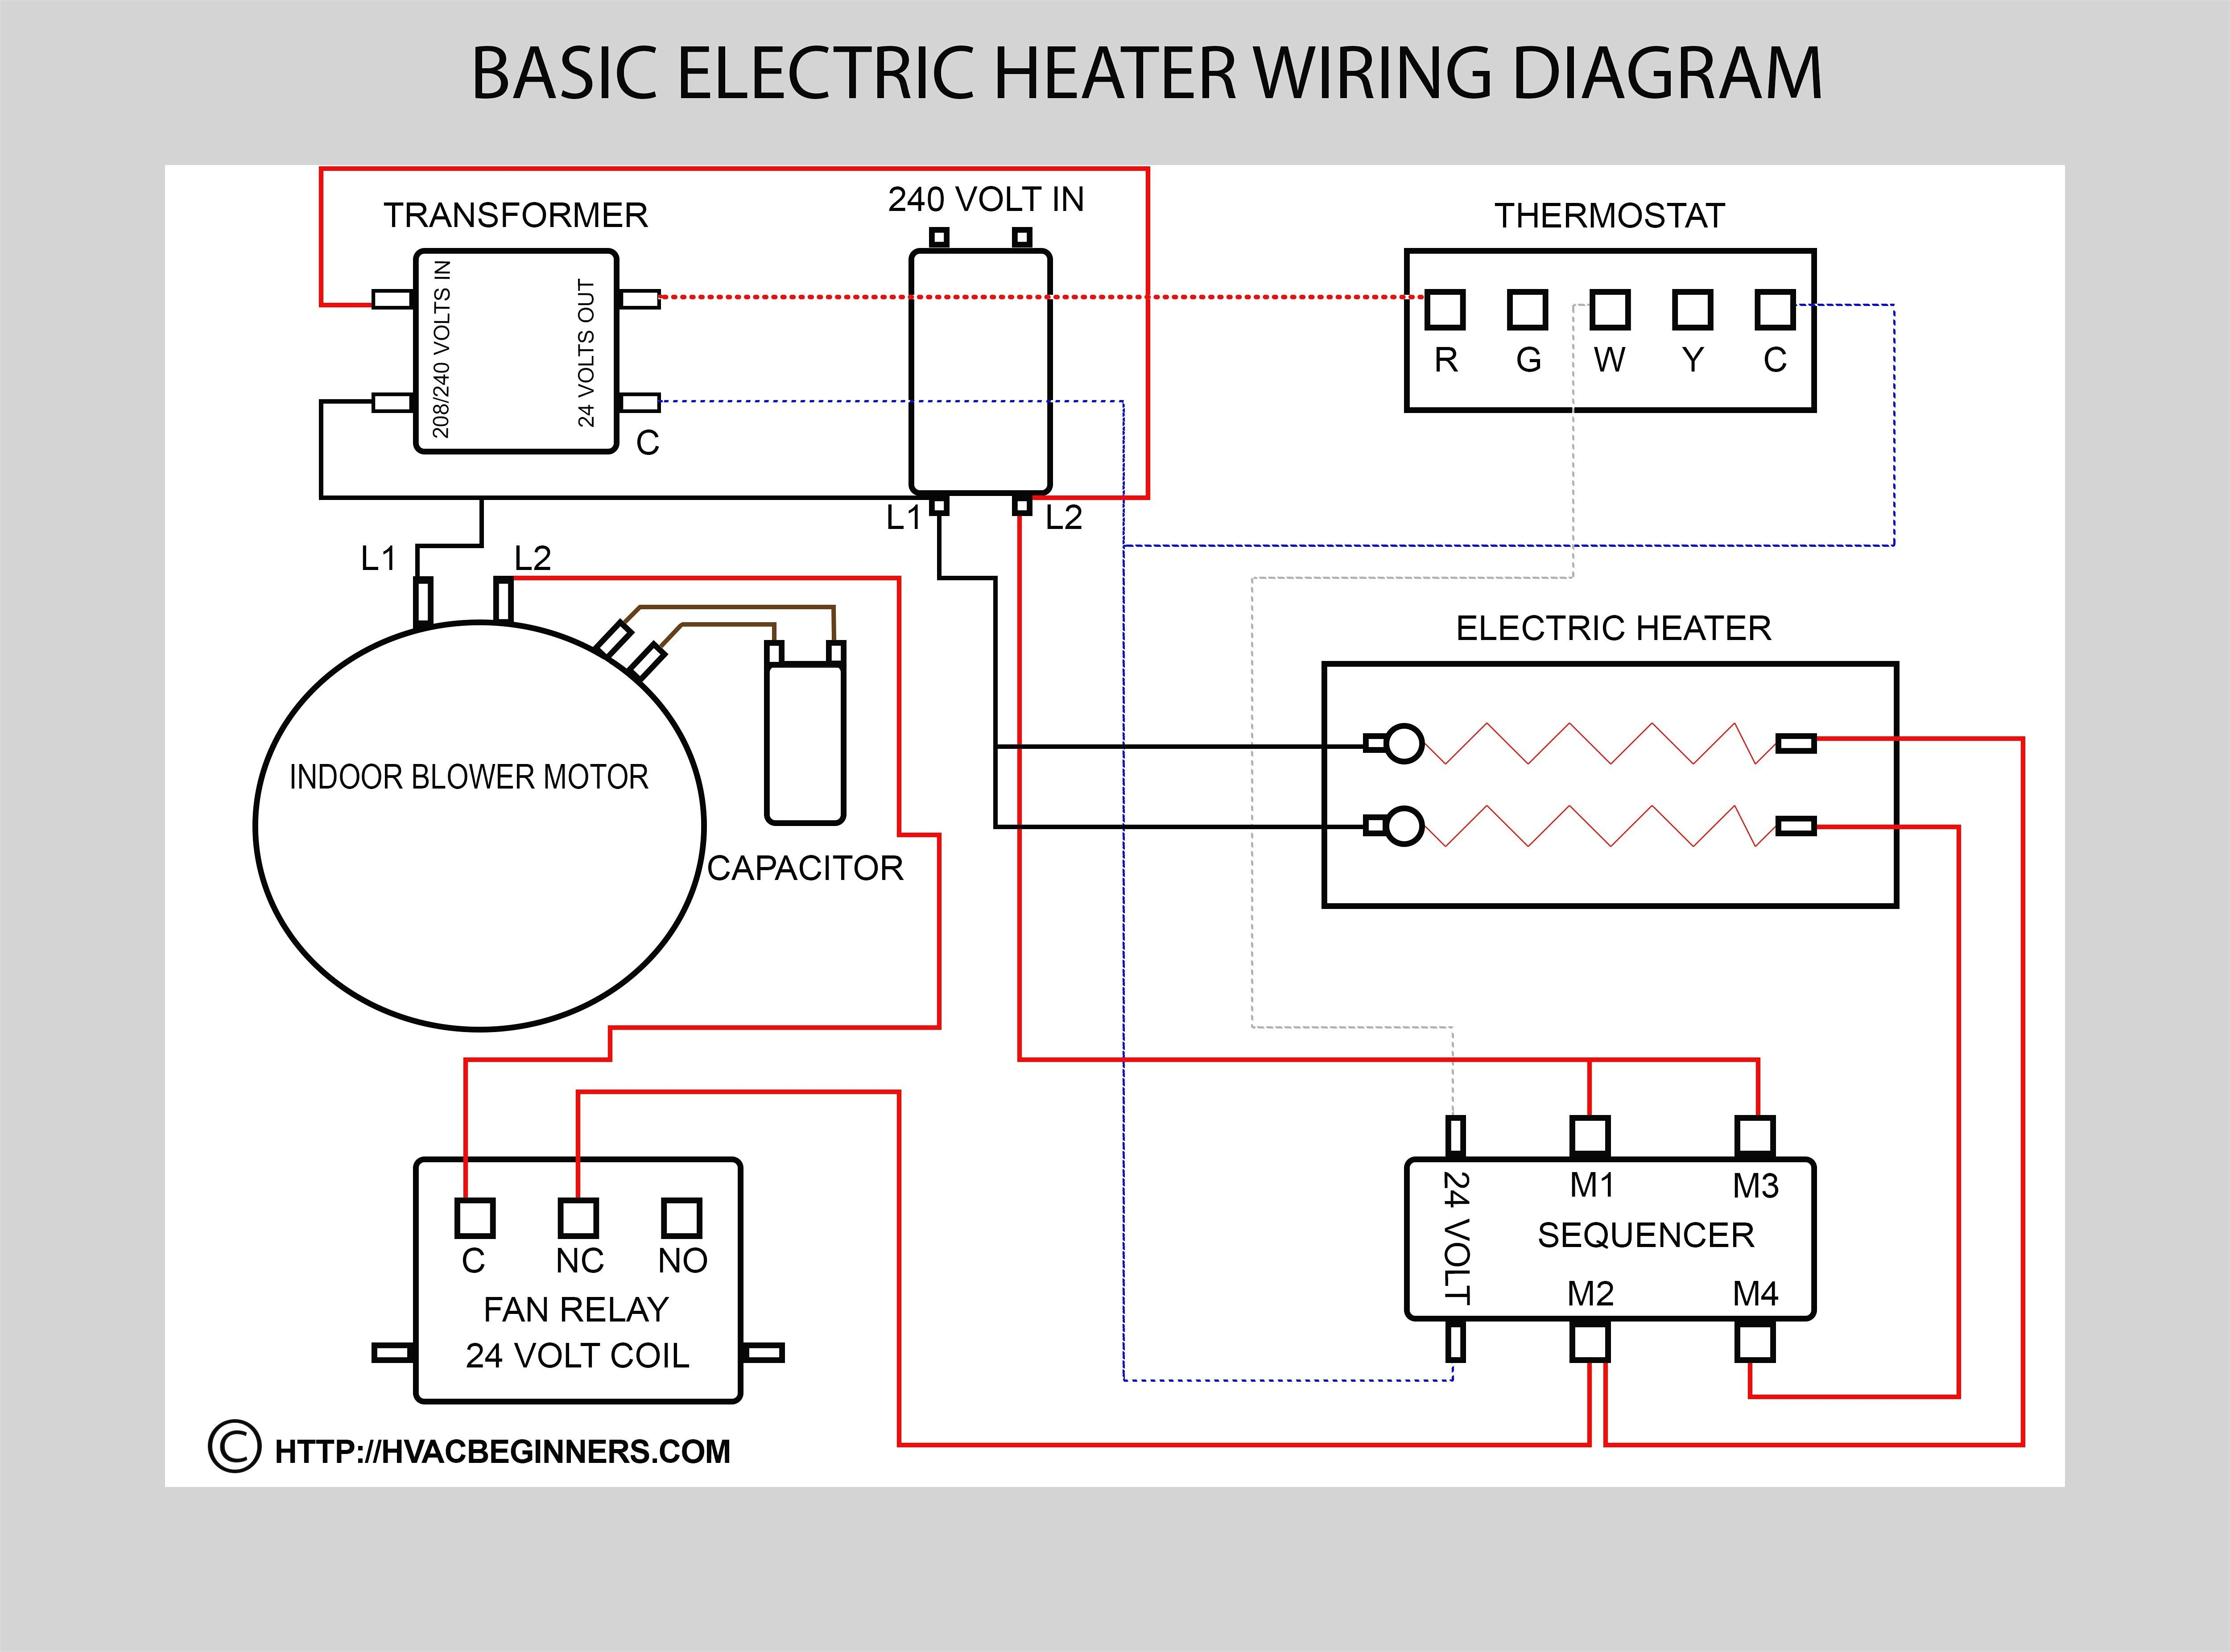 Mcdonnell Miller 150 Wiring Diagram Electrical Low Water Cut Off Explained Diagrams Lux 500 Guard Dog